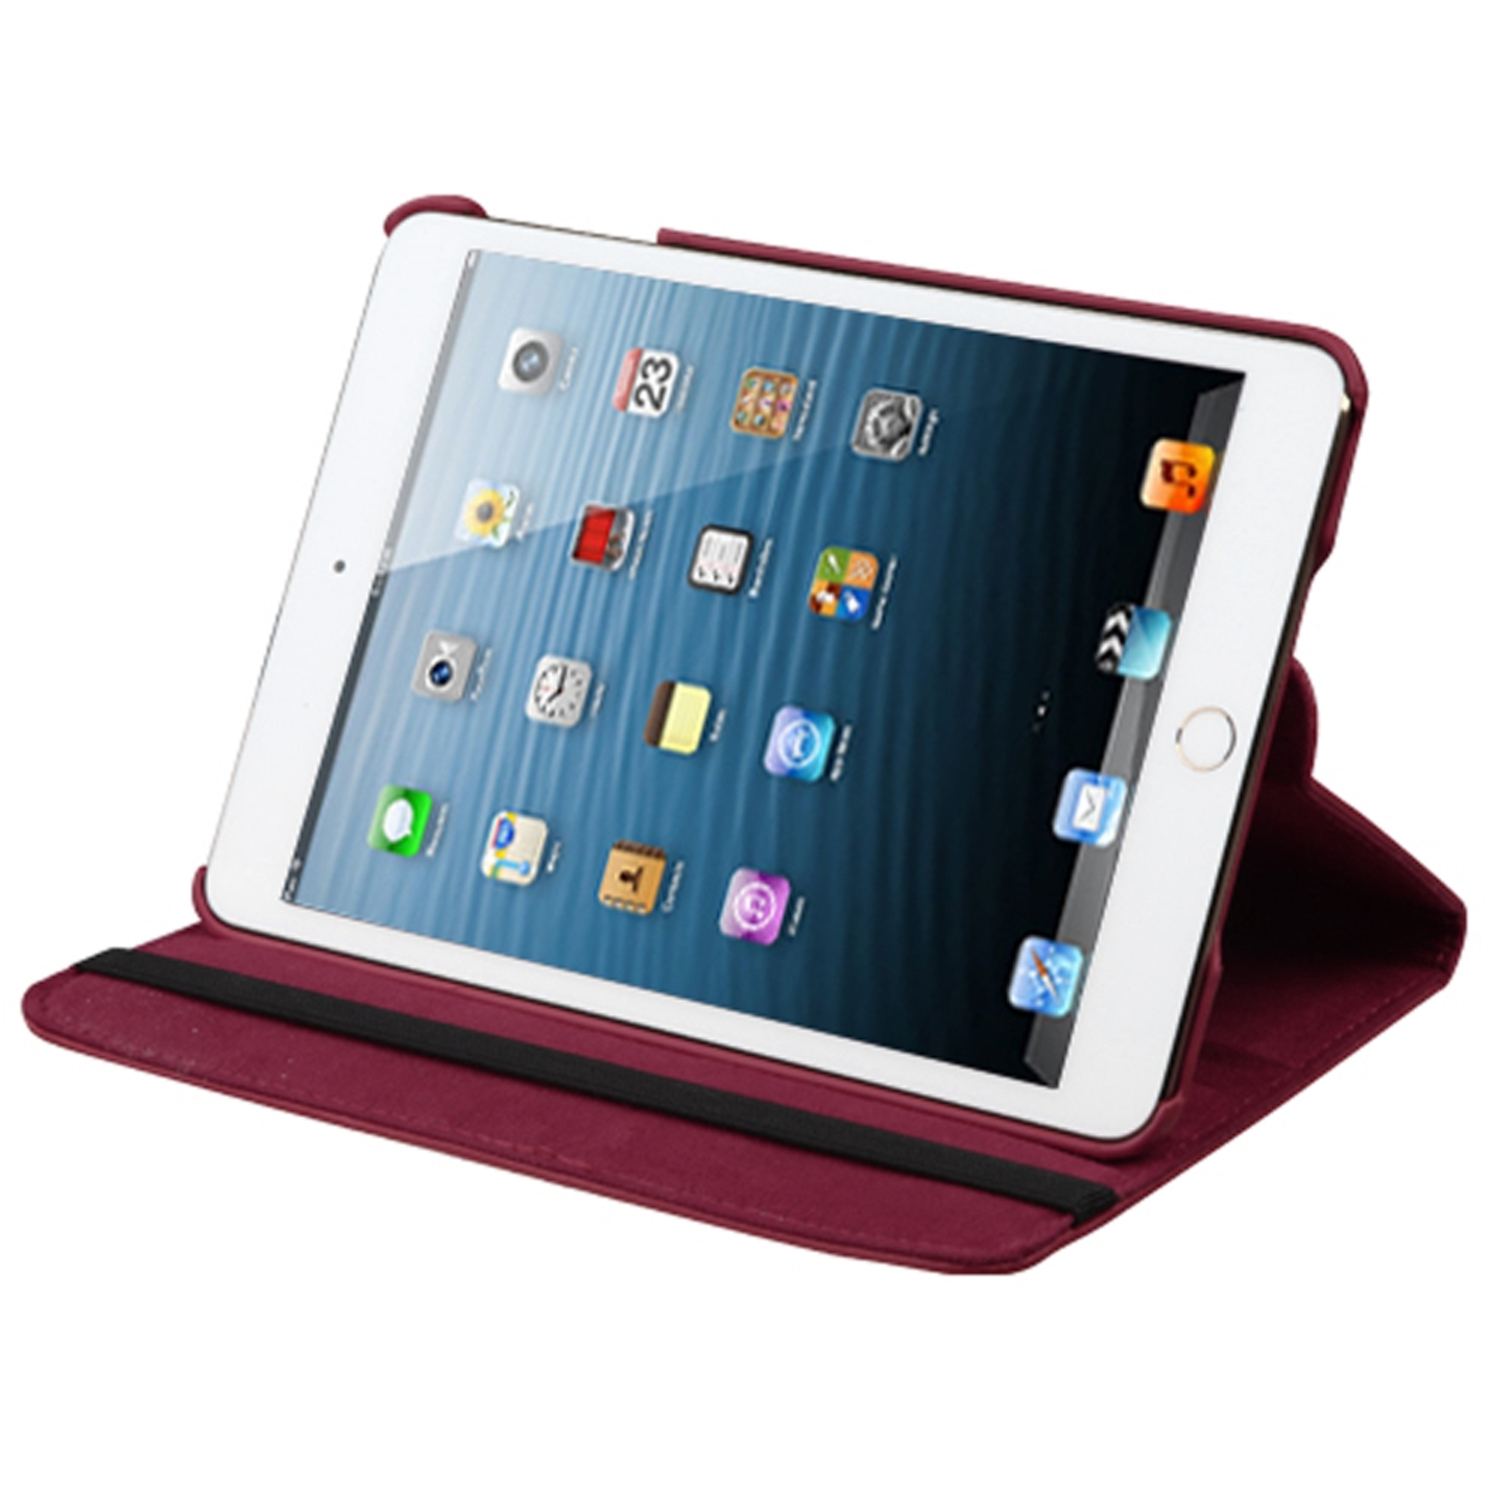 Insten Multi-Viewing Leather Stand Cover Case For iPad Mini 3 2 1 - Red